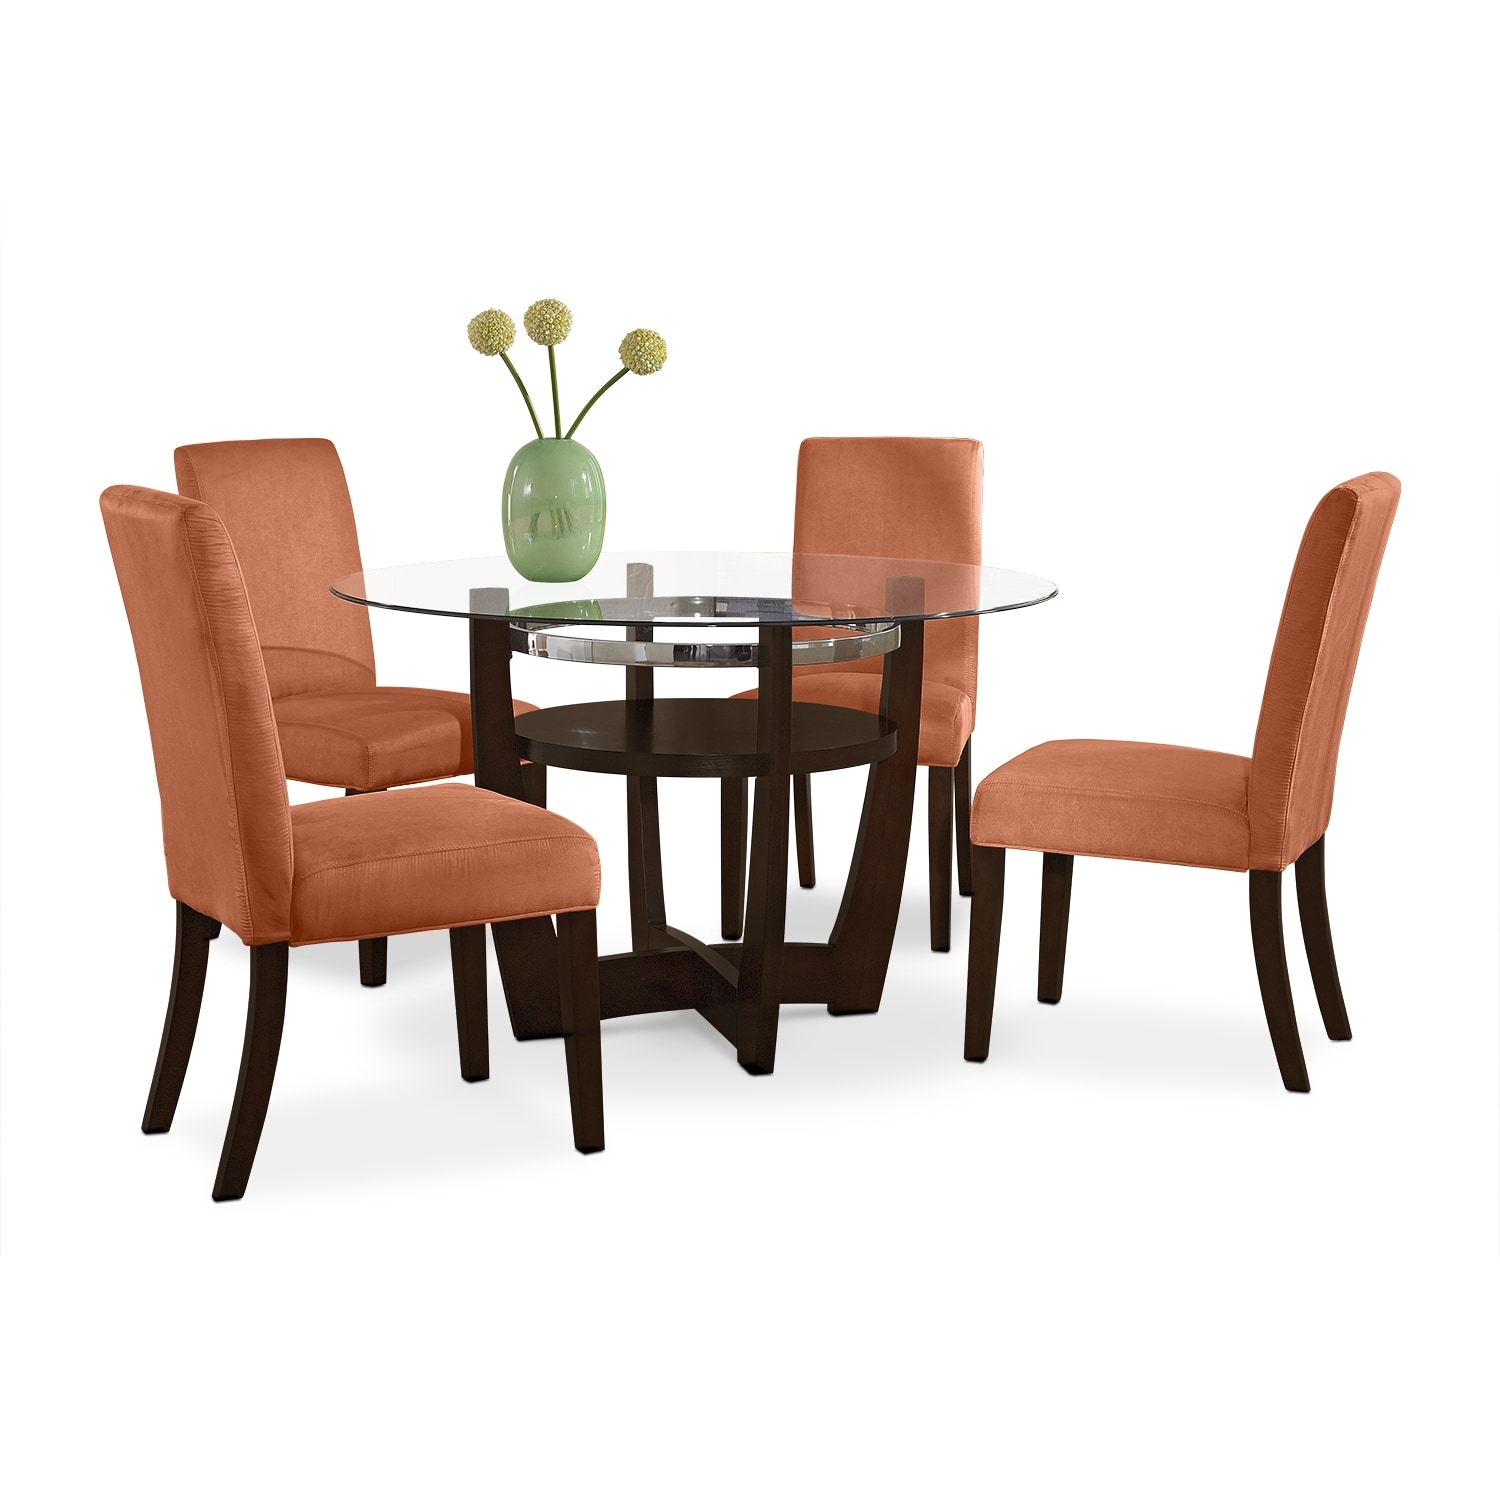 Dining Room Furniture - Alcove Dinette with 4 Side Chairs - Orange